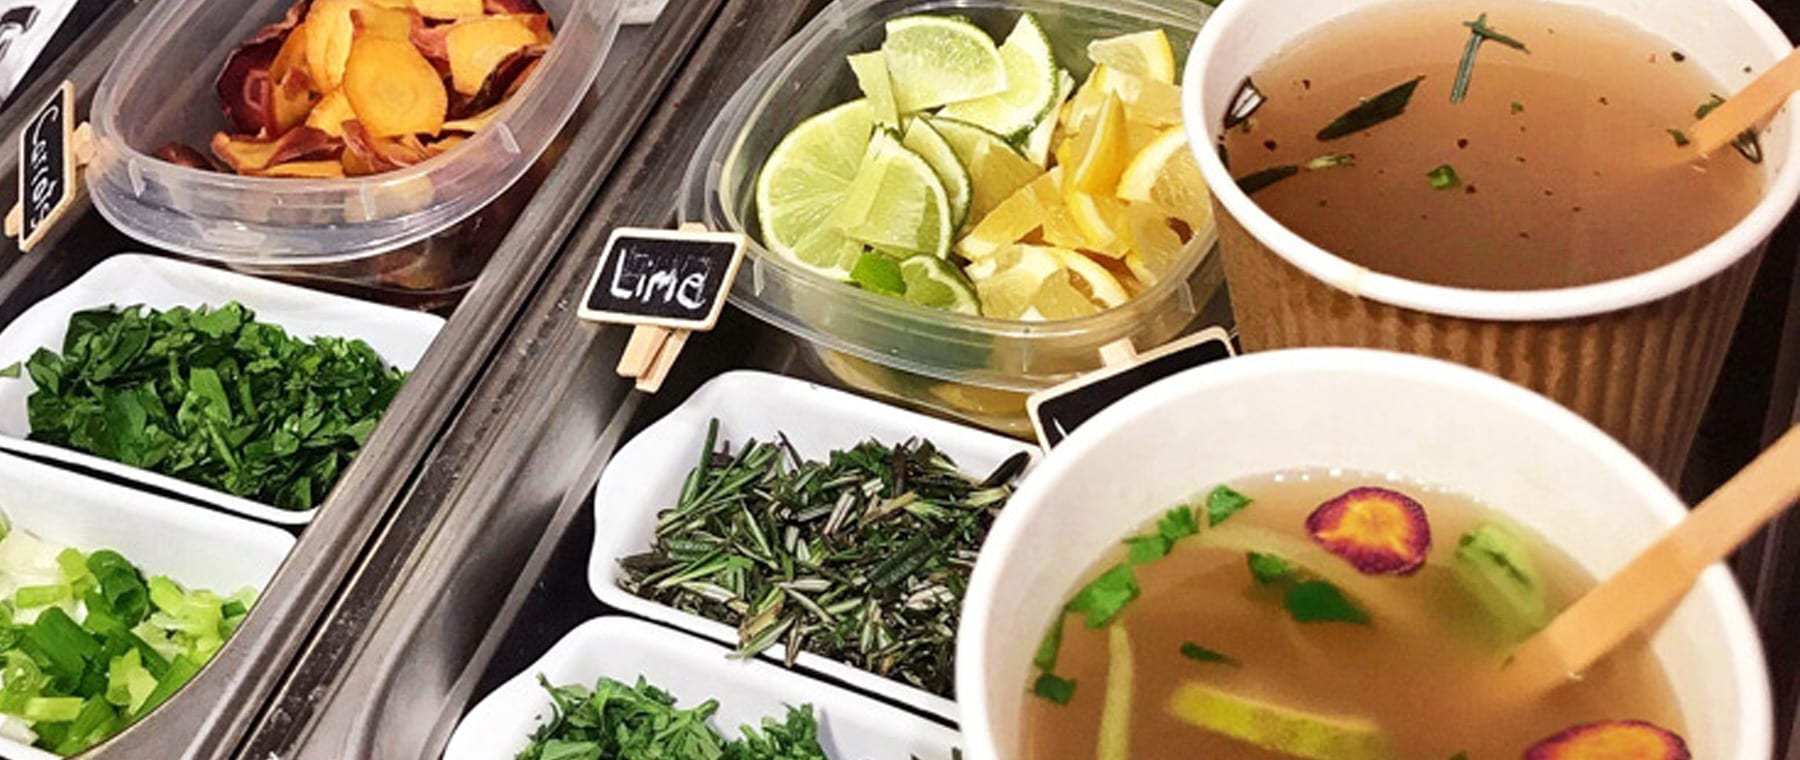 City's first bone broth bar opens — Muckleston & Brockwell ladle out chicken & beef 'tea'